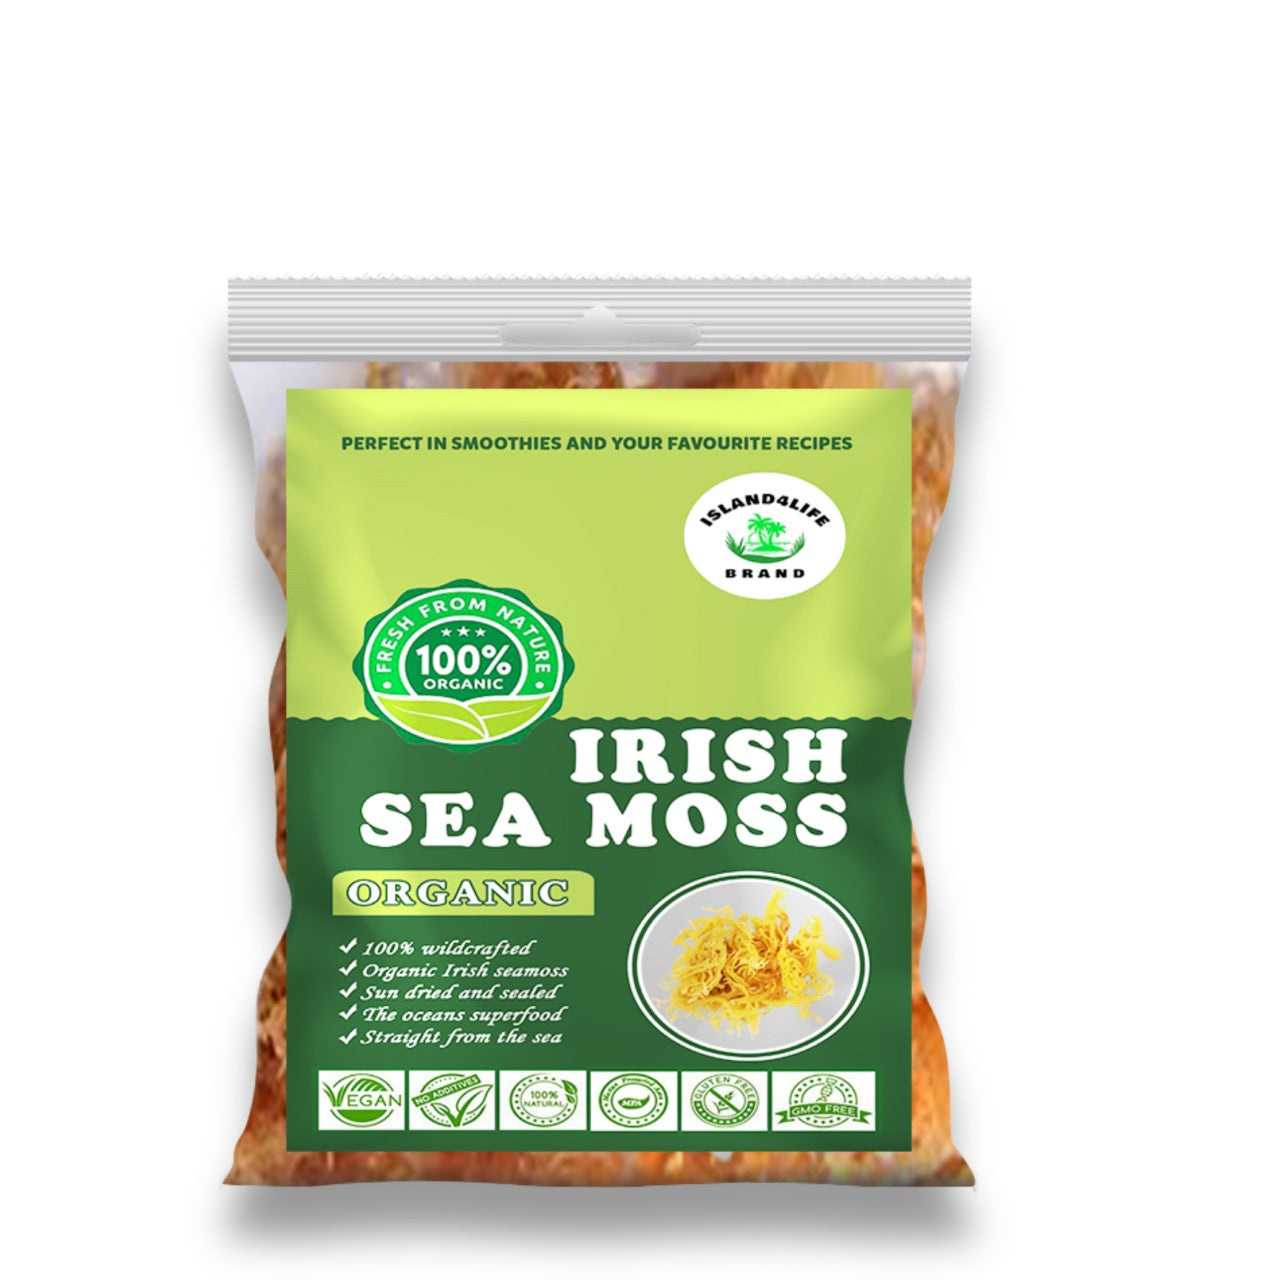 2oz SIZE Irish sea moss